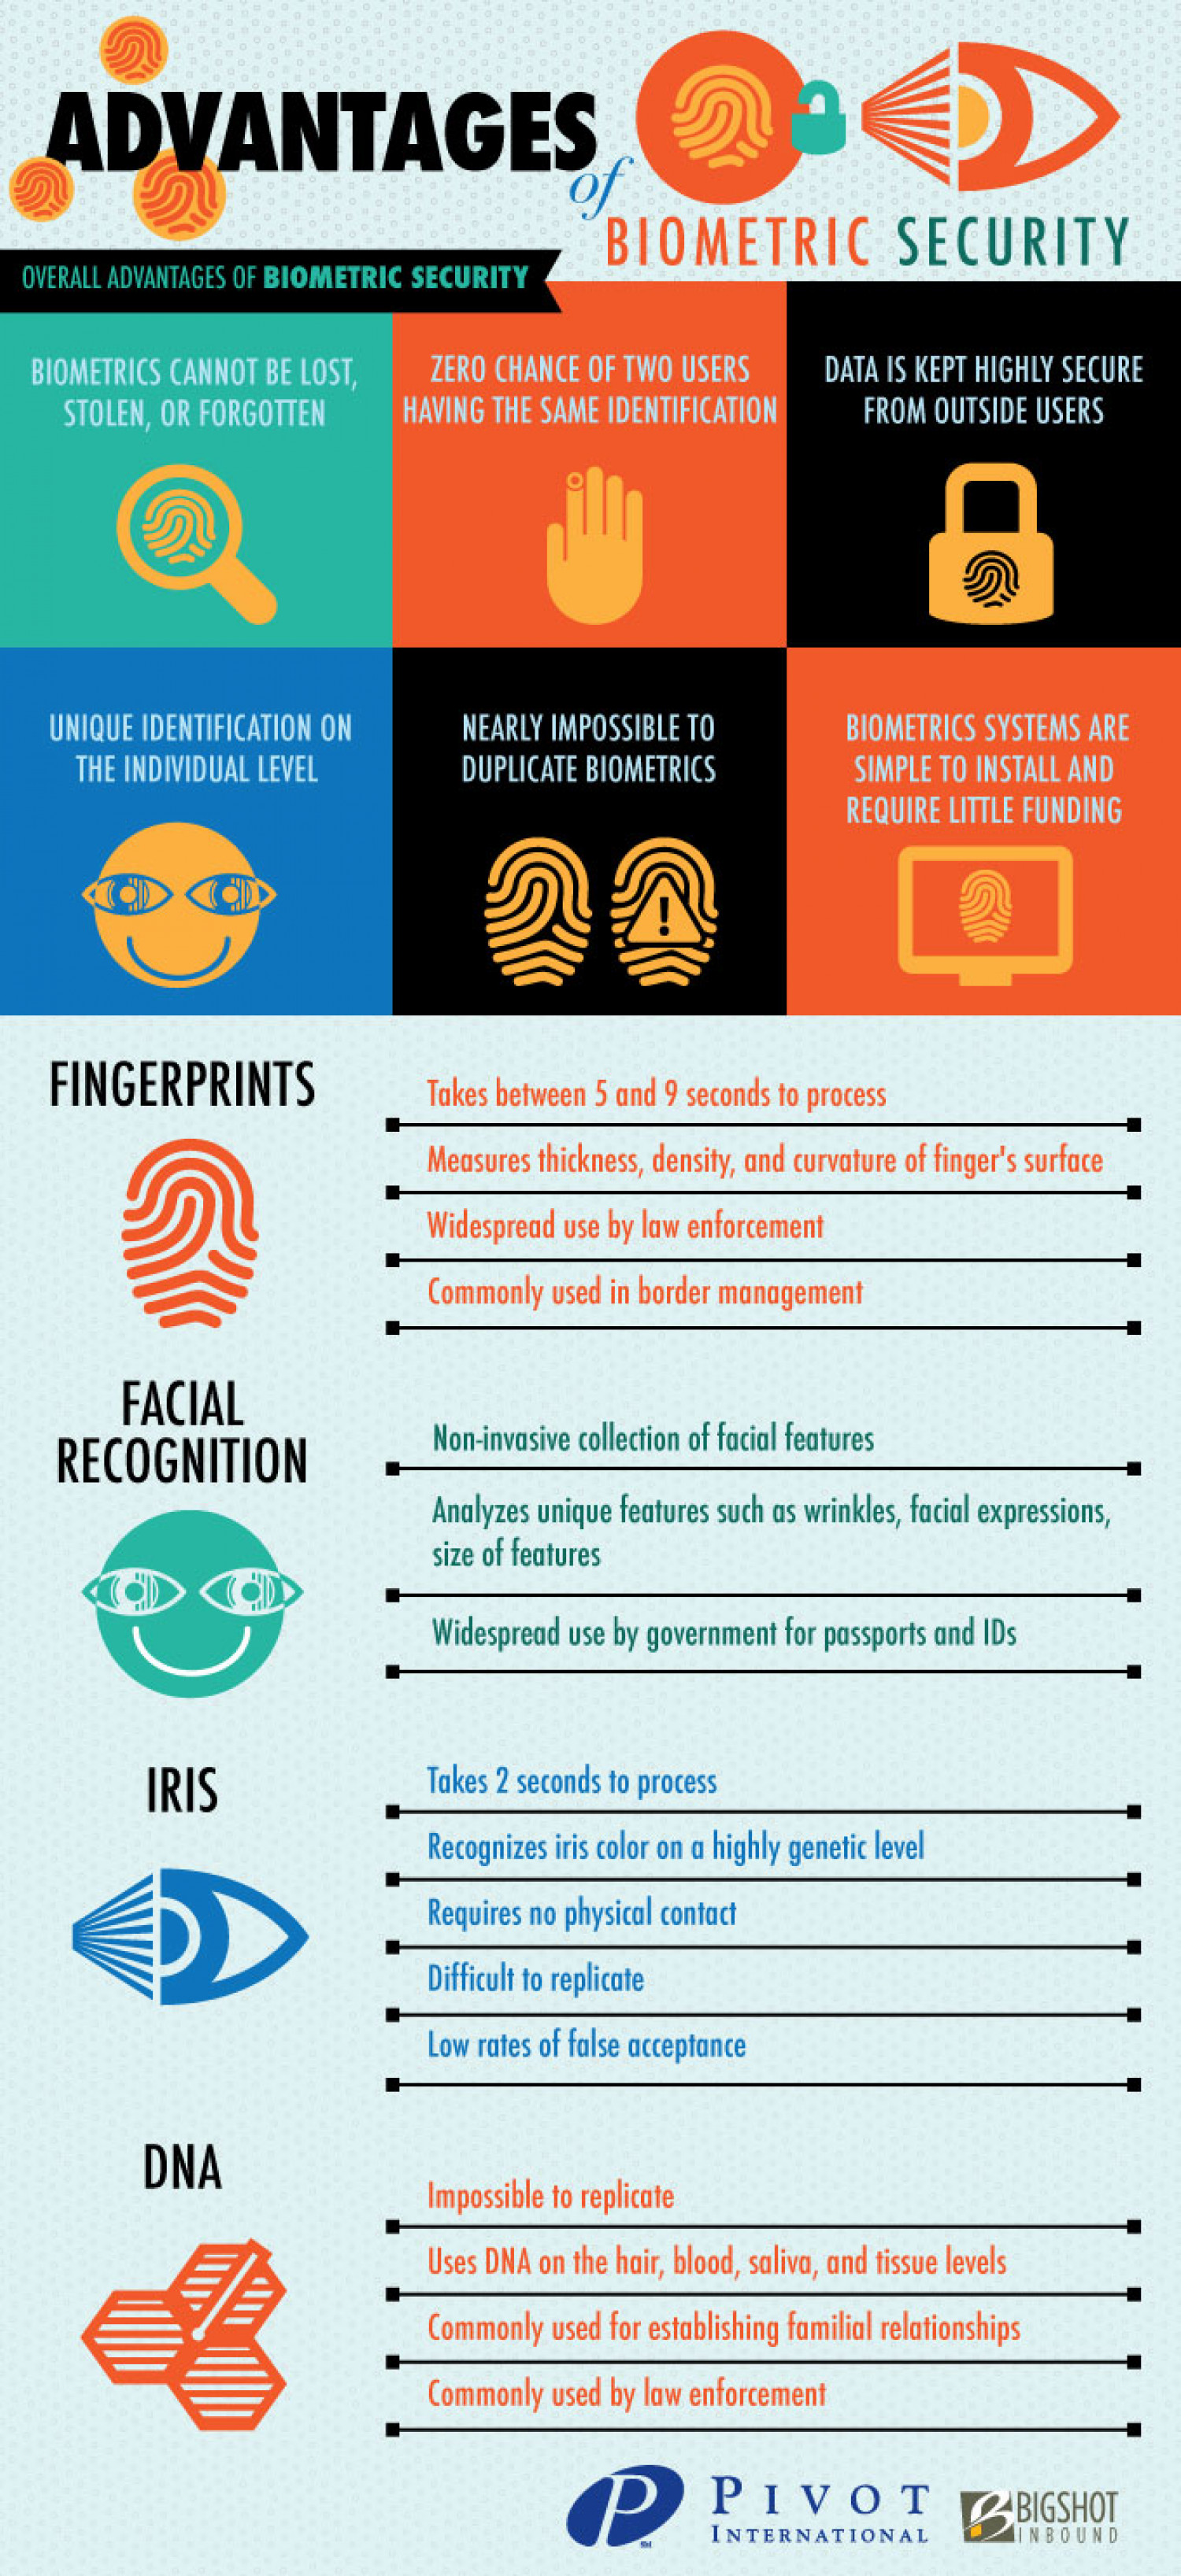 Advantages of Biometric security Infographic